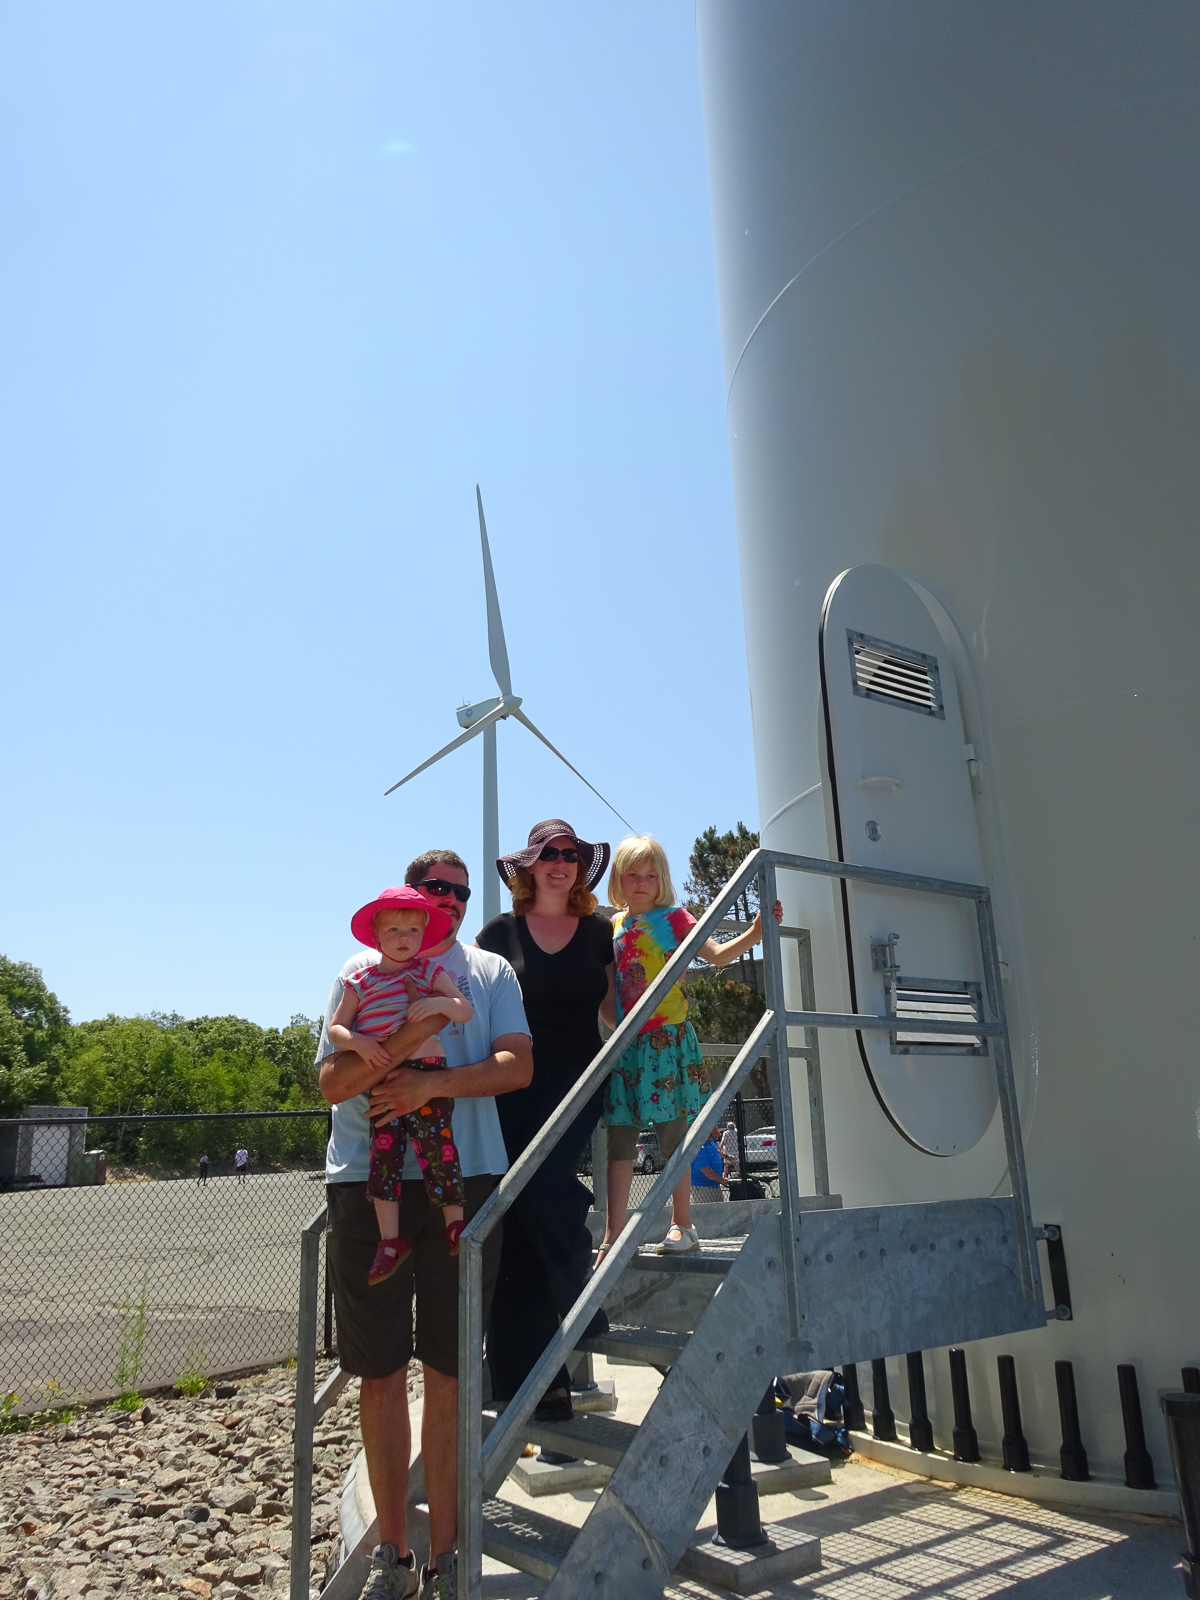 Wind turbine and family in Gloucester, MA